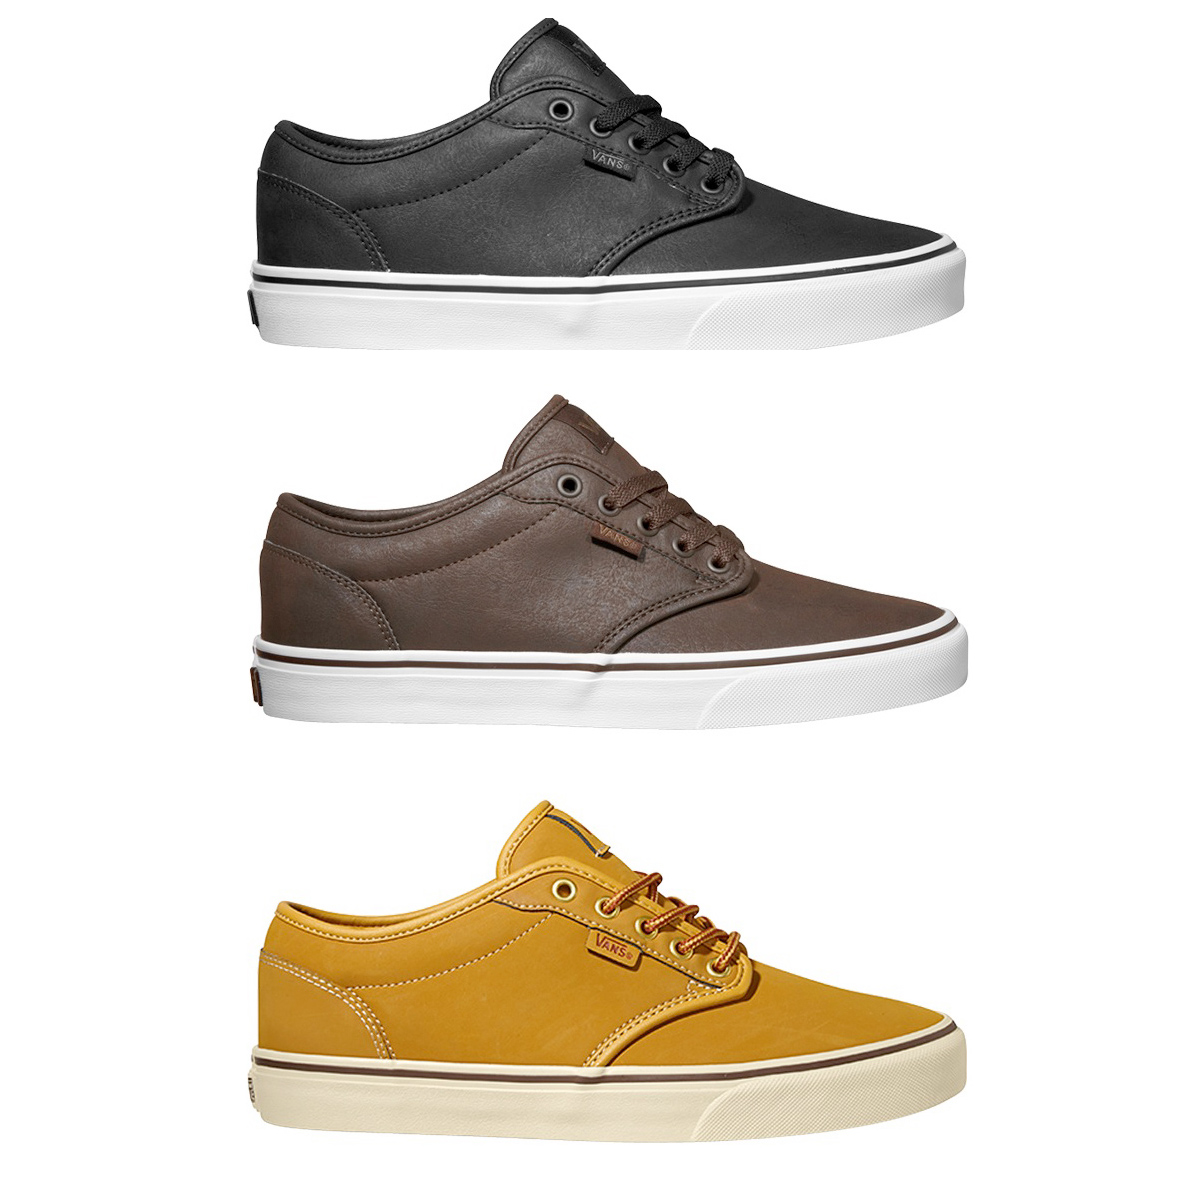 4879710d49 Details about Vans Mens Shoes - Atwood Buck Leather - Skate